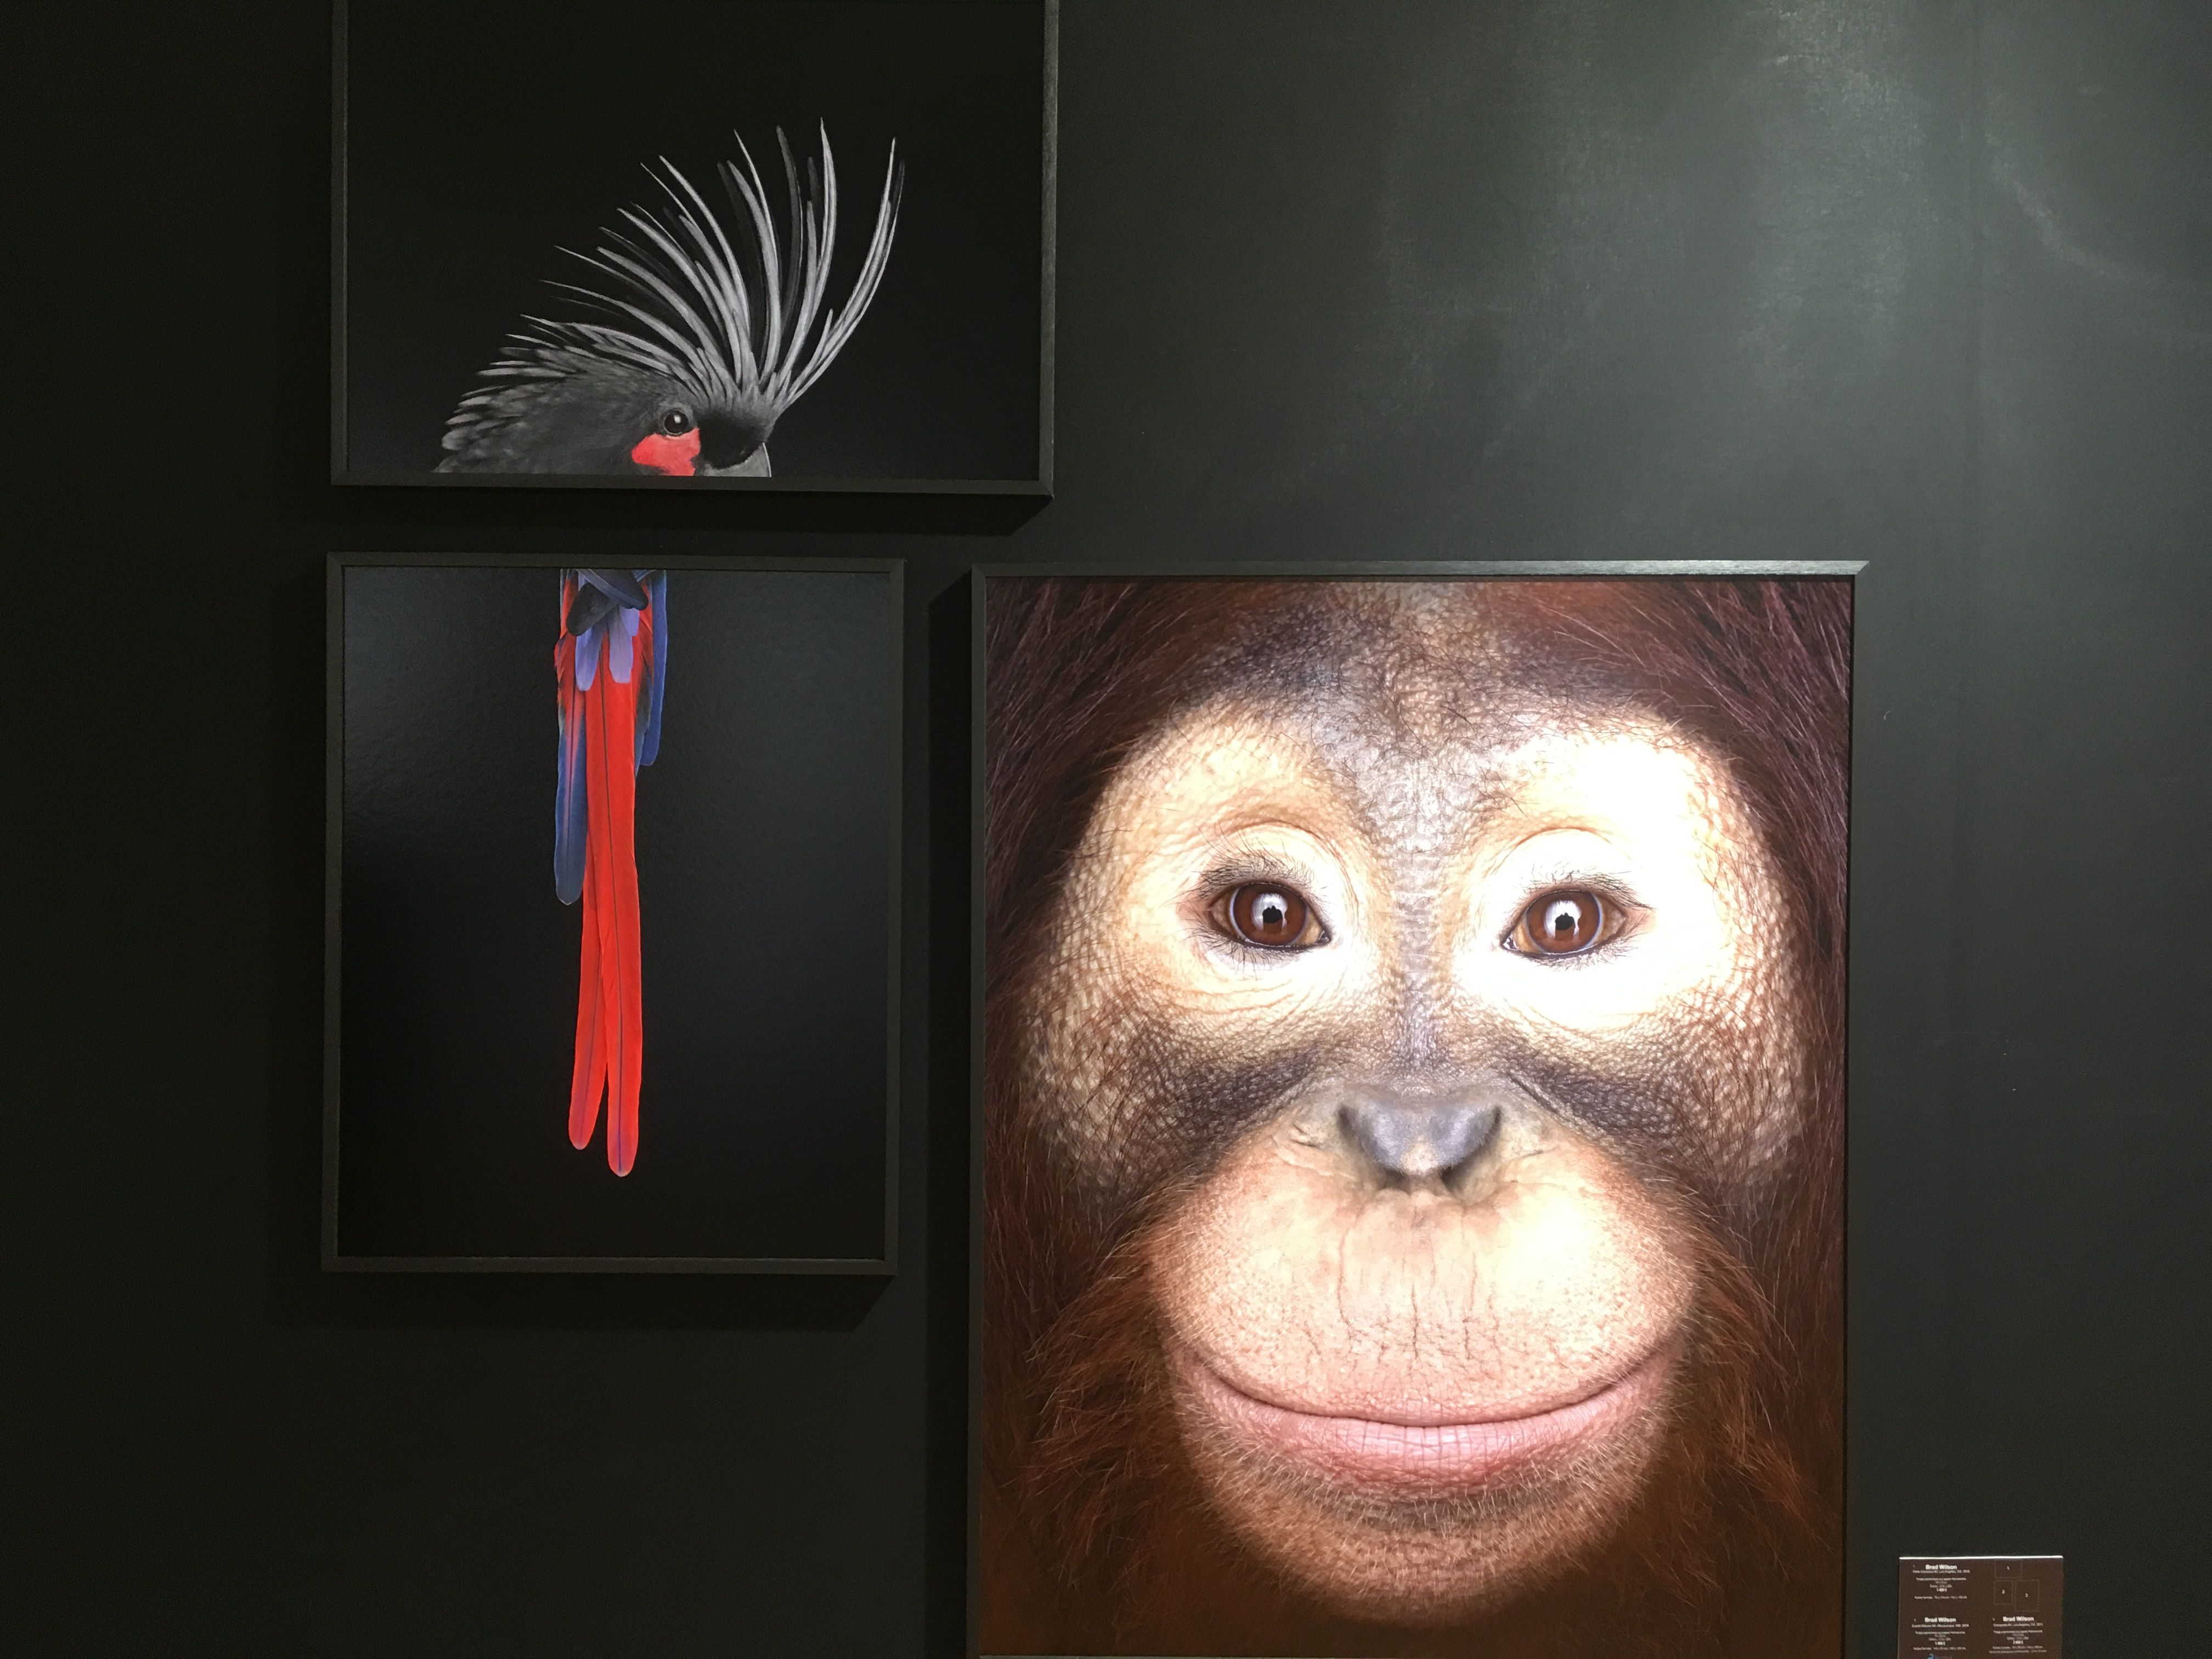 Orangutan #1, Los Angeles, CA, 2011,Brad Wilson,Photography, detail 1